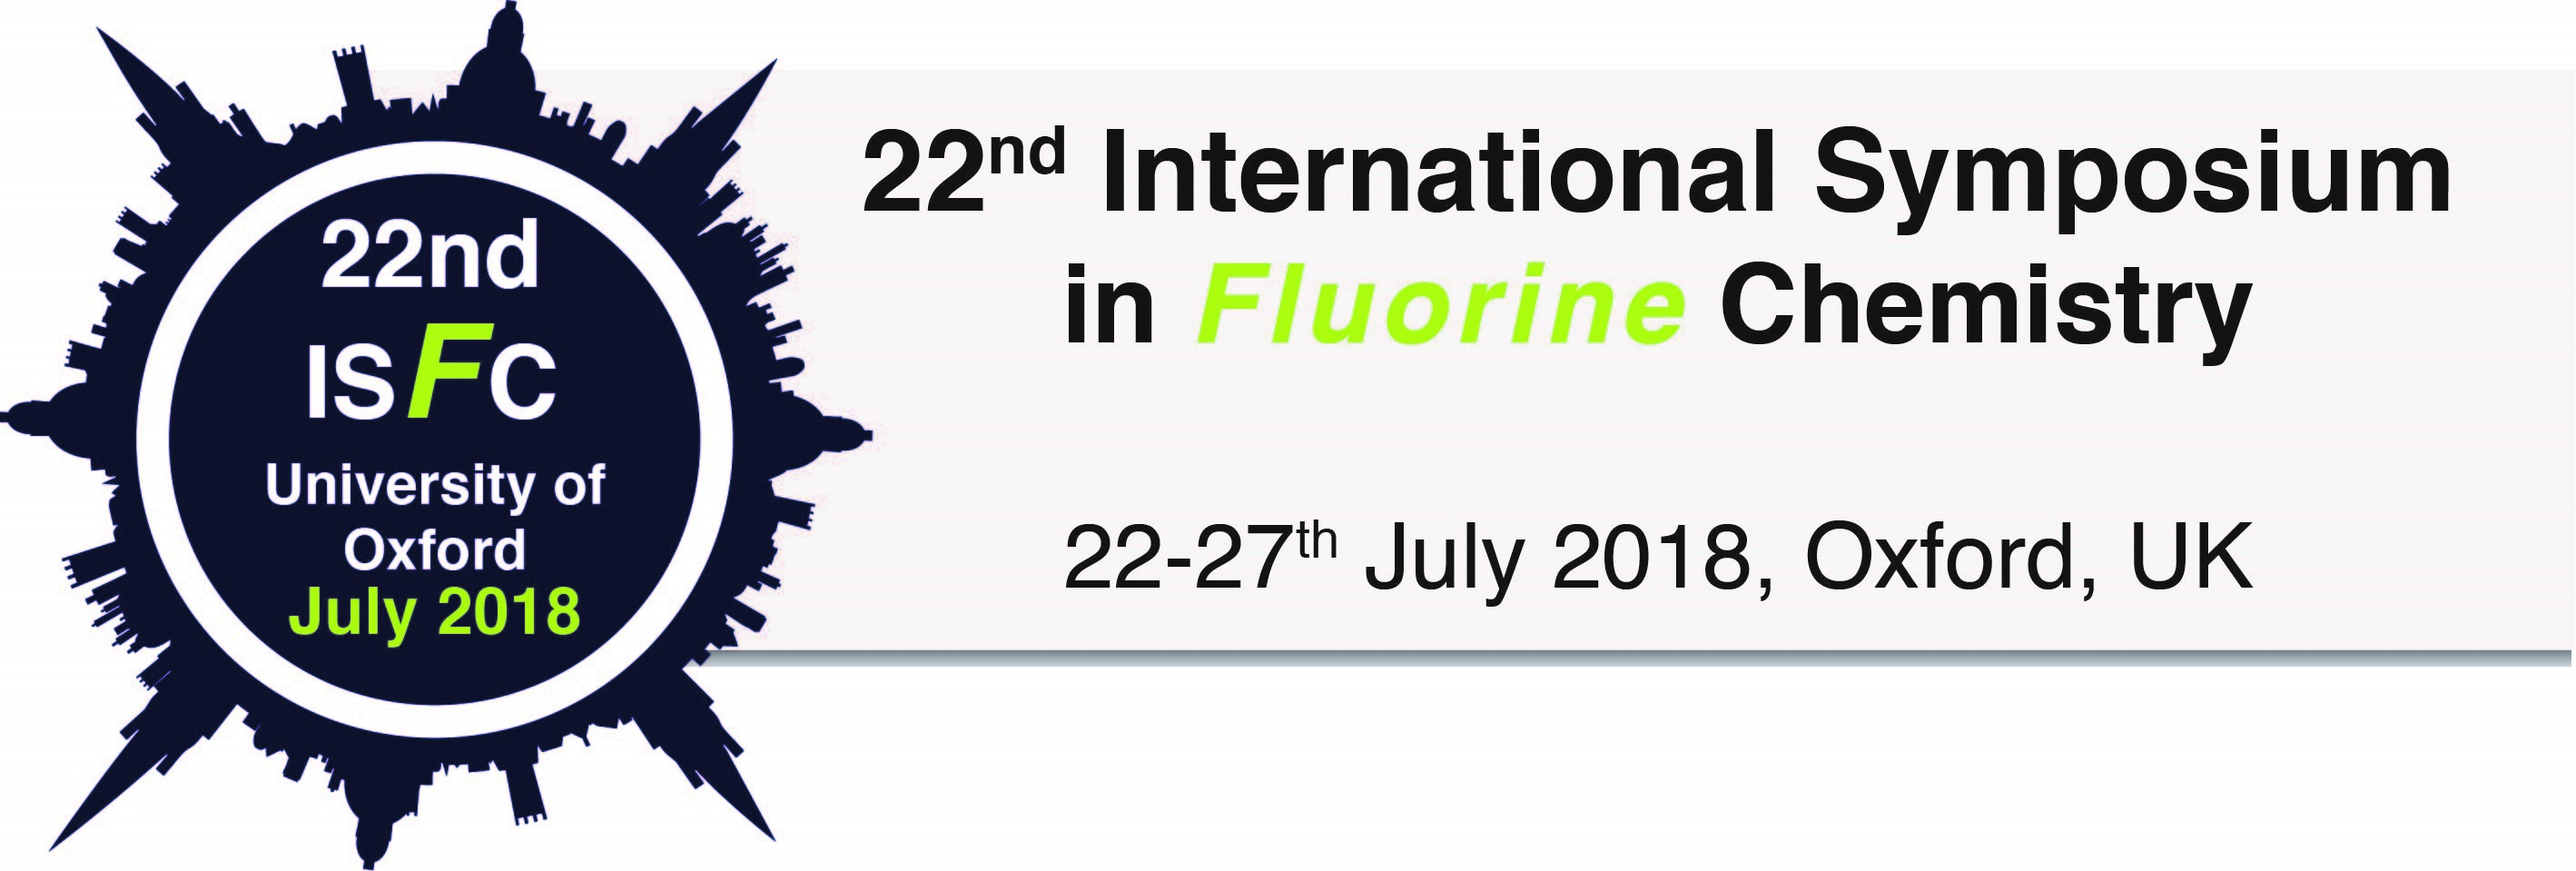 The 22nd International Symposium in Fluorine Chemistry - Oxford 2018